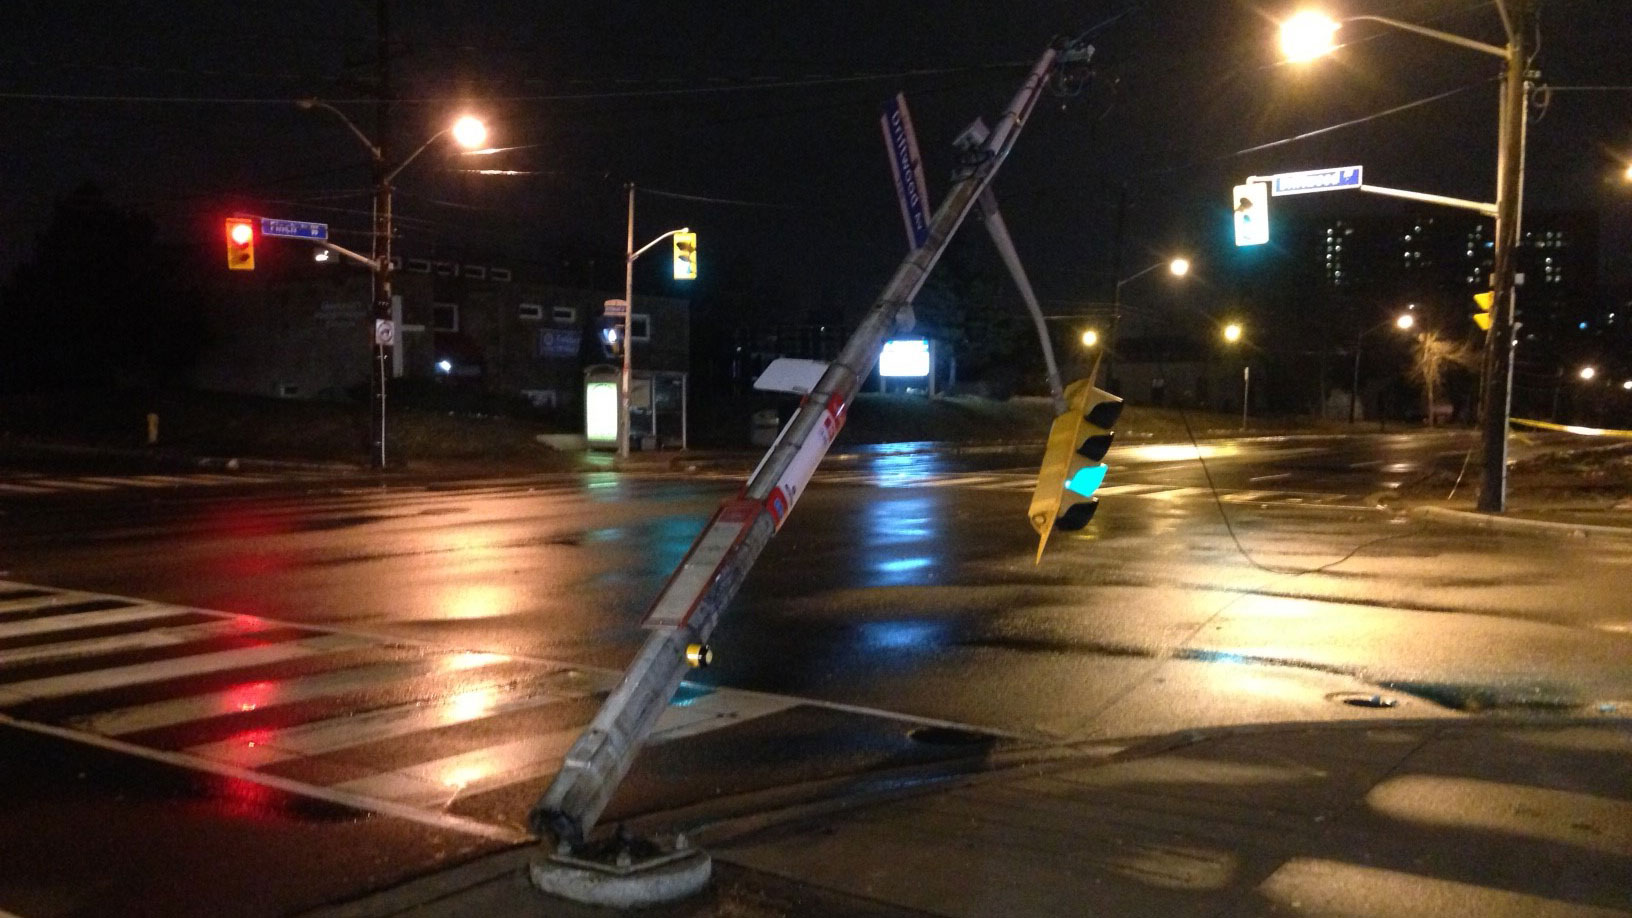 Traffic and street lights are damaged due to high winds in Toronto on Jan. 11, 2017. CITYNEWS/Bertram Dandy